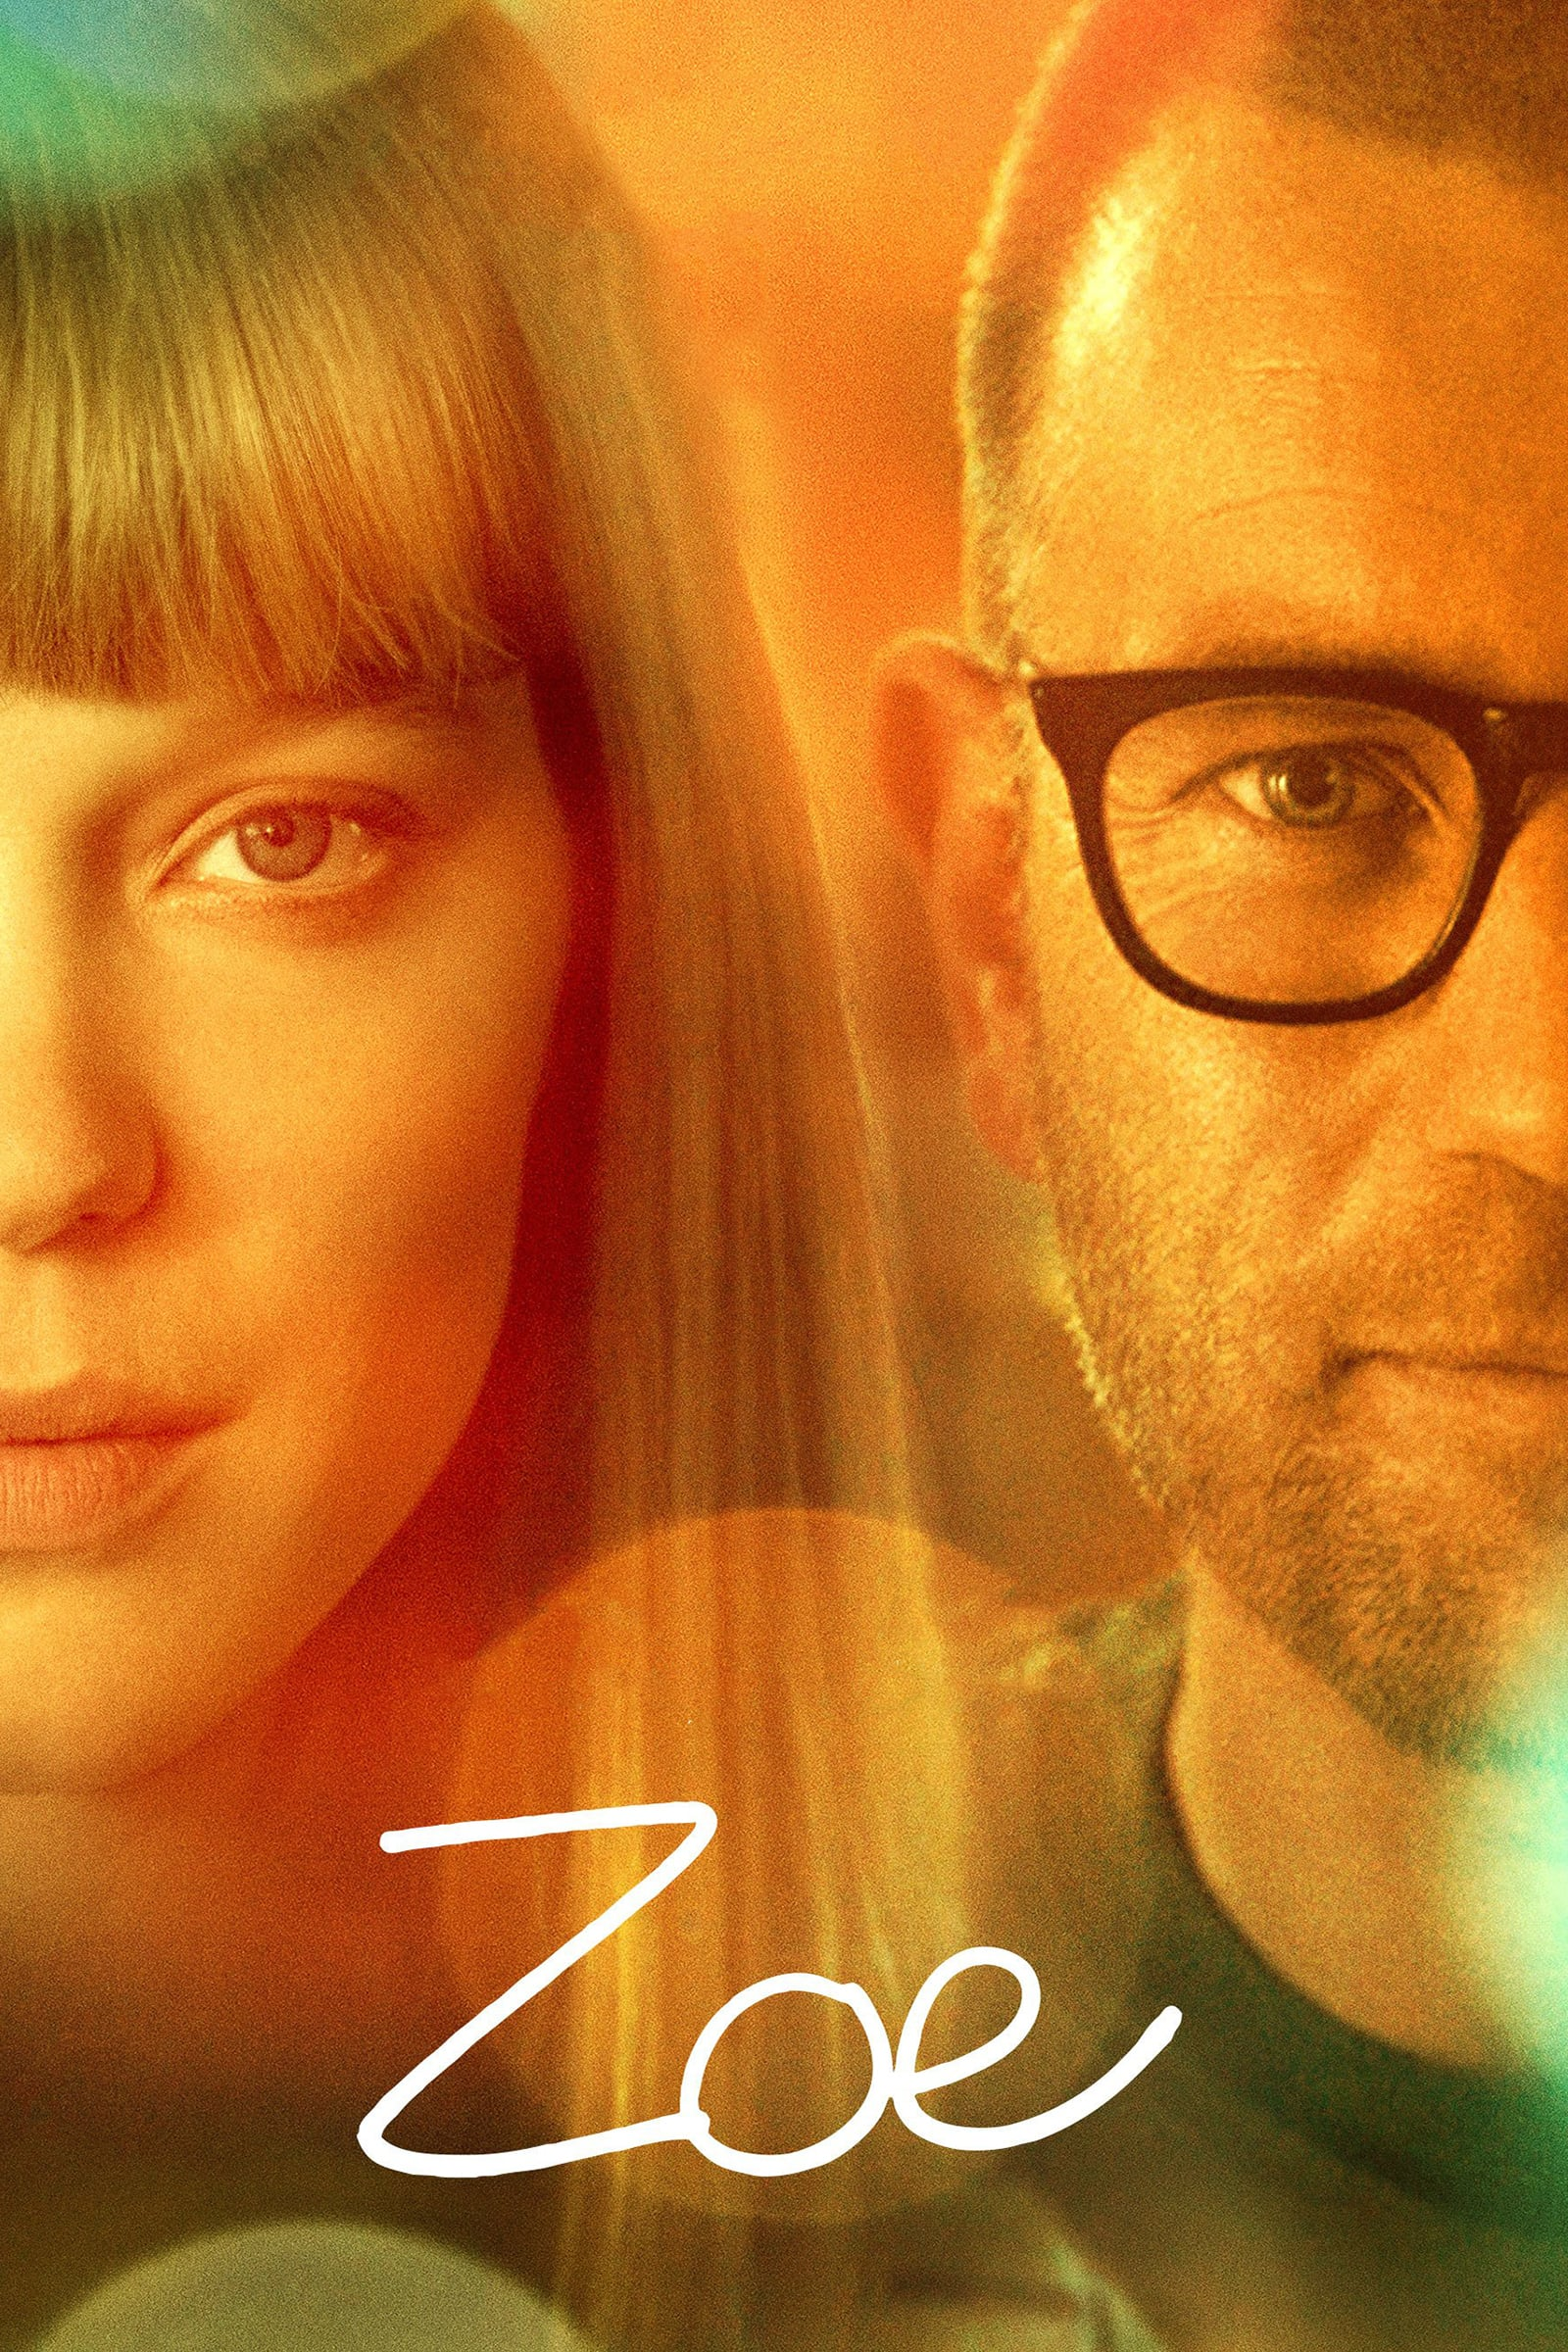 Zoe Movie Poster - ID: 257042 - Image Abyss